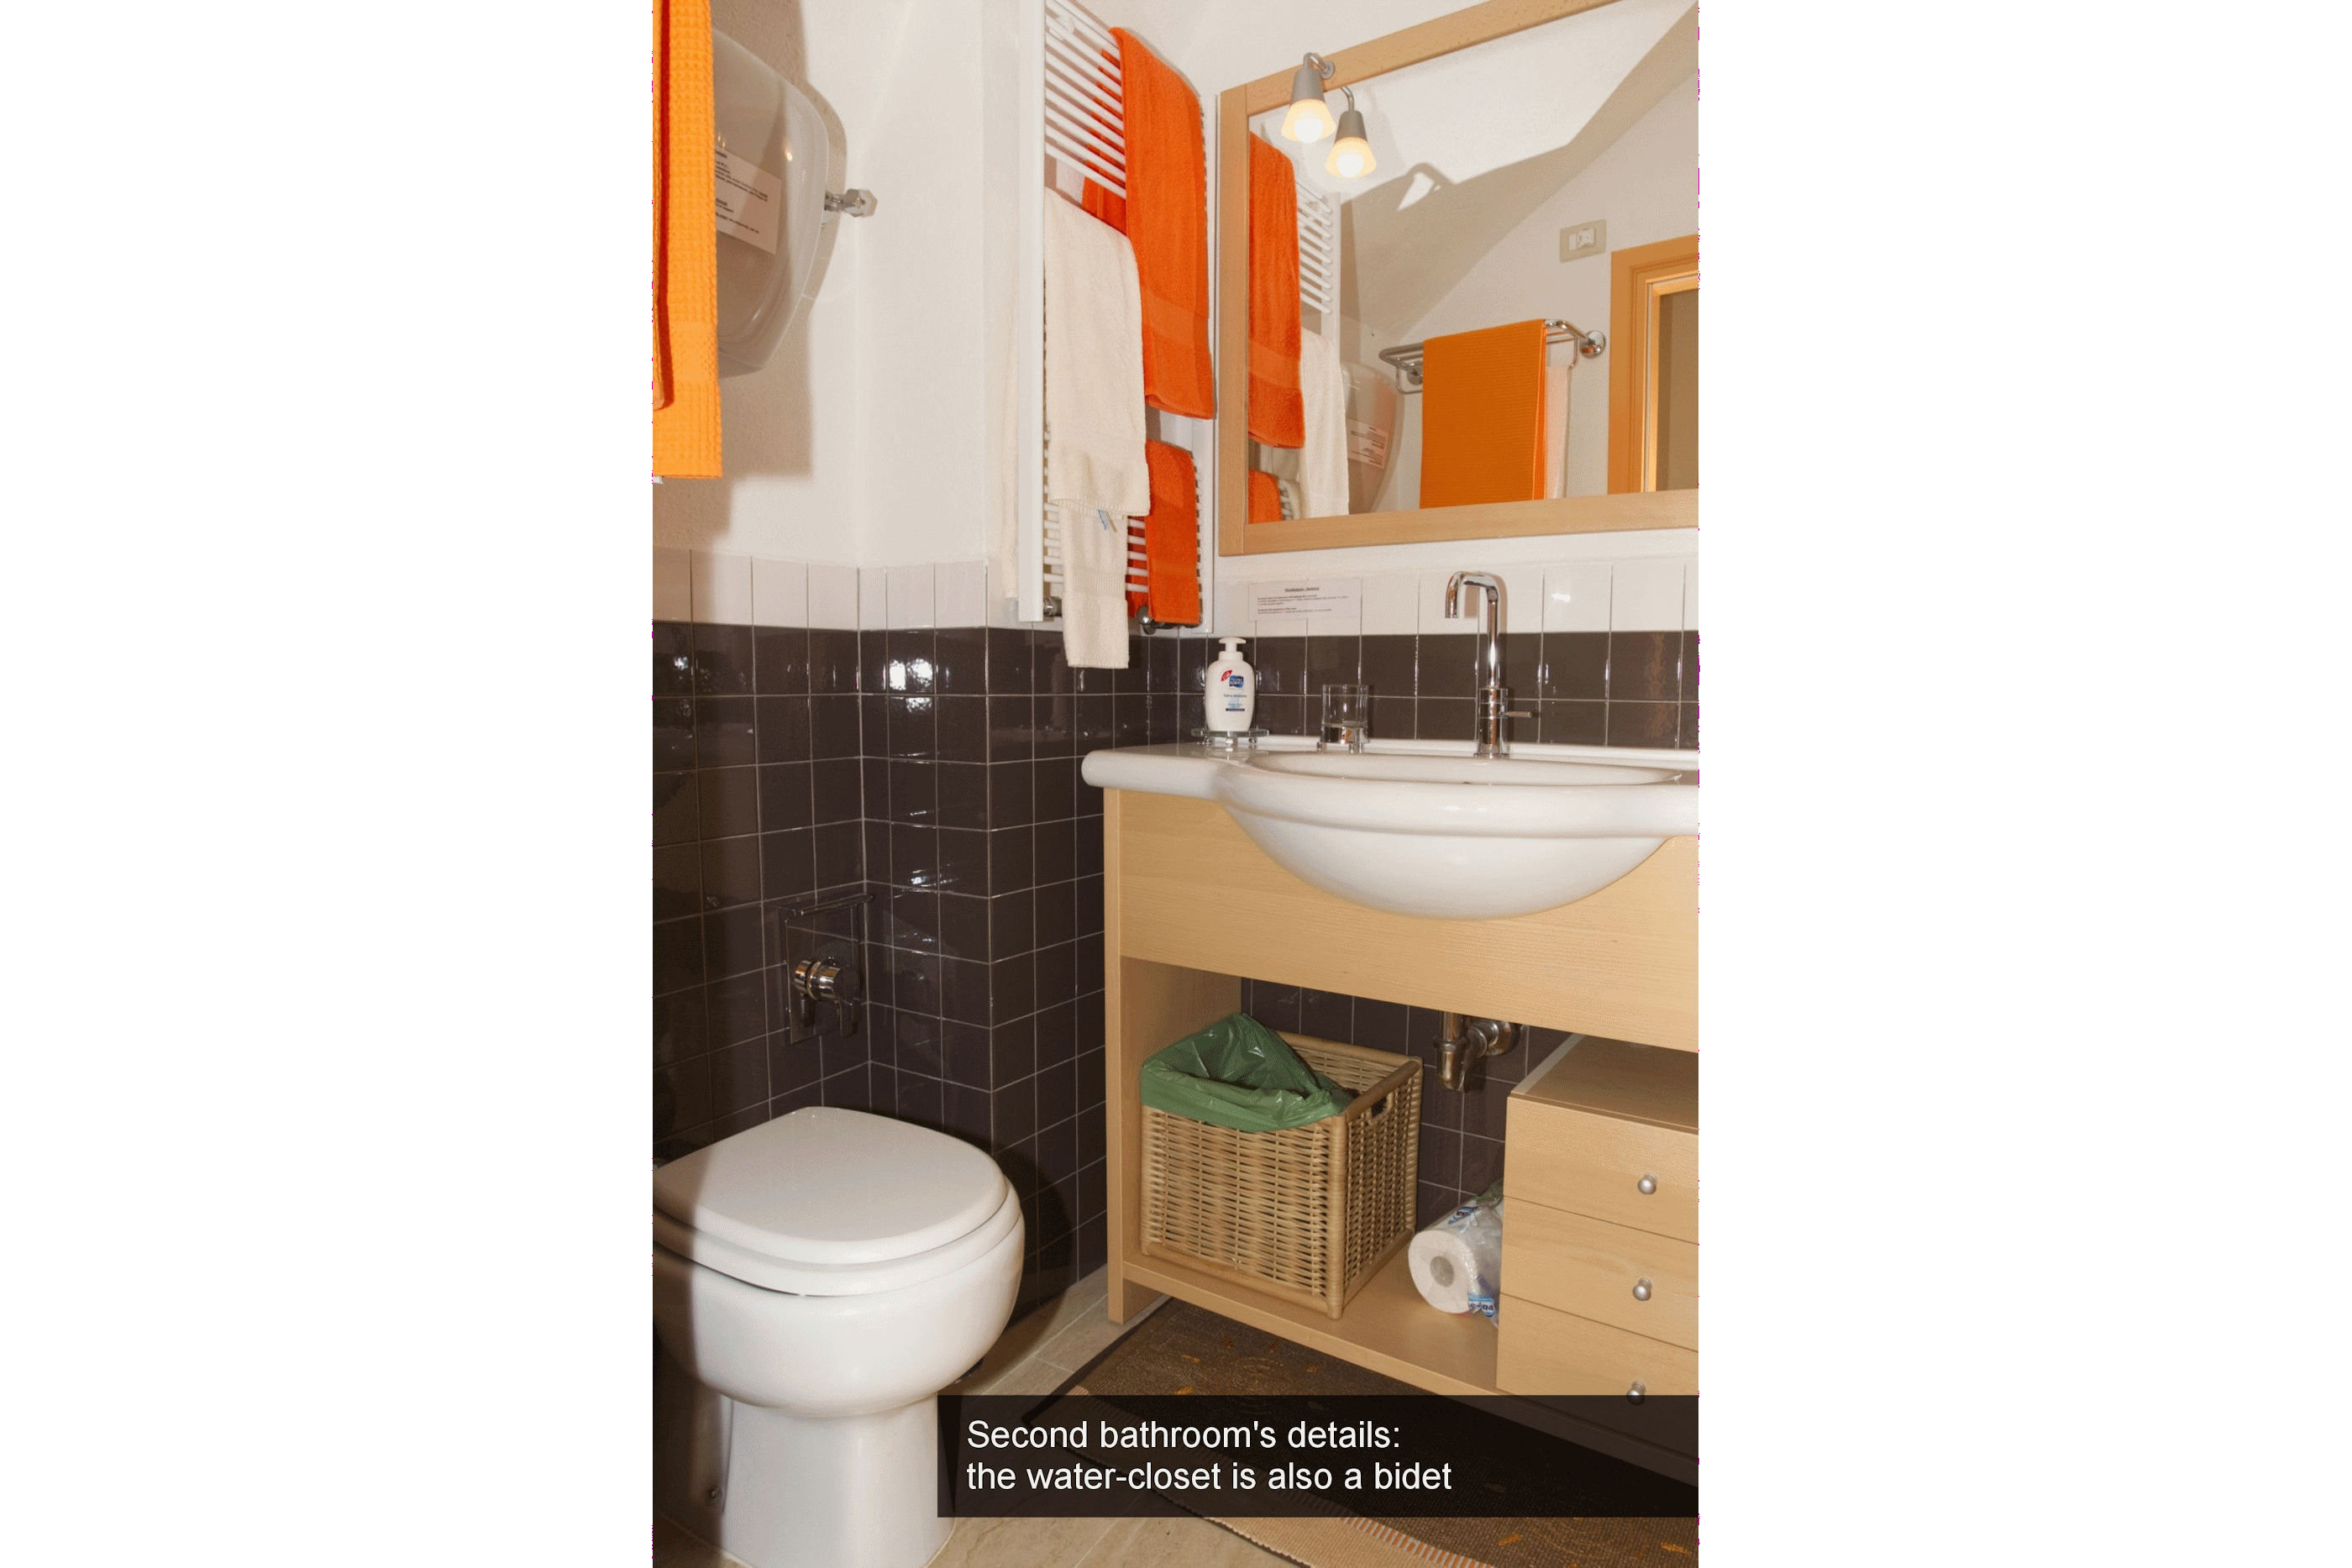 09) Second bathroom's details - the water-closet is also a bidet